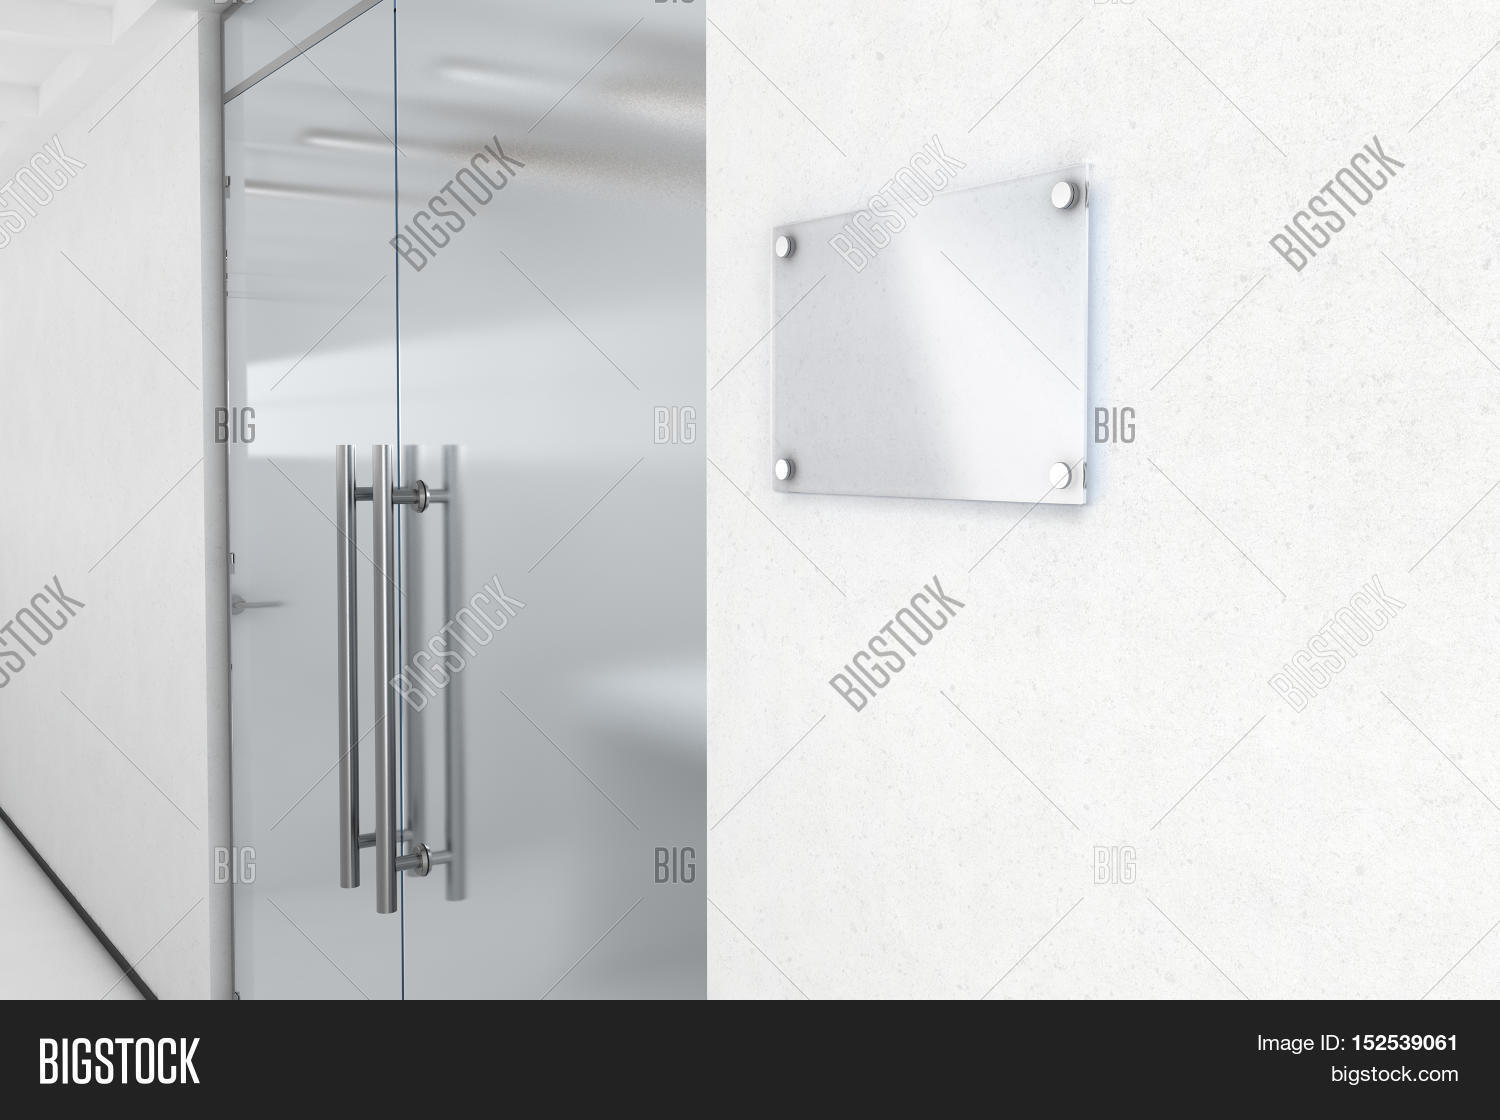 Blank Glass Name Plate Image & Photo (Free Trial) | Bigstock